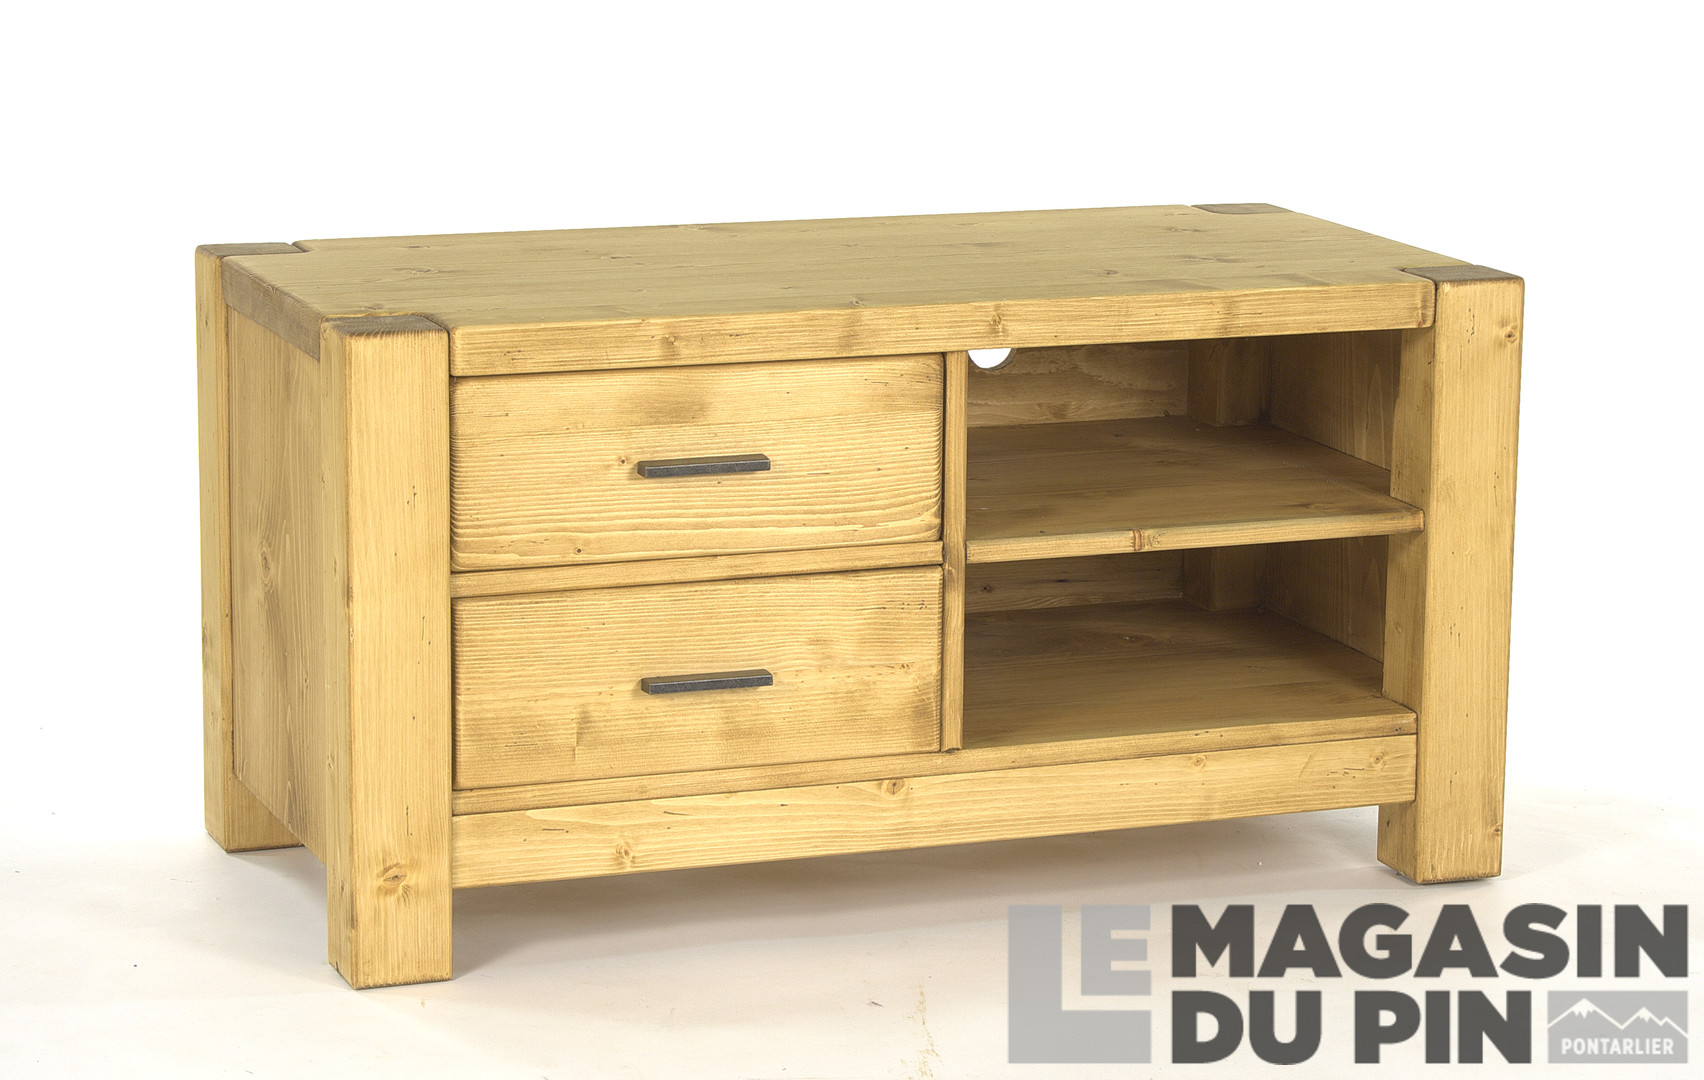 Meuble Tv 100 Cm En Pin Massif Adriana 2 Tiroirs Le Magasin Du Pin # Meuble Tv En Pin